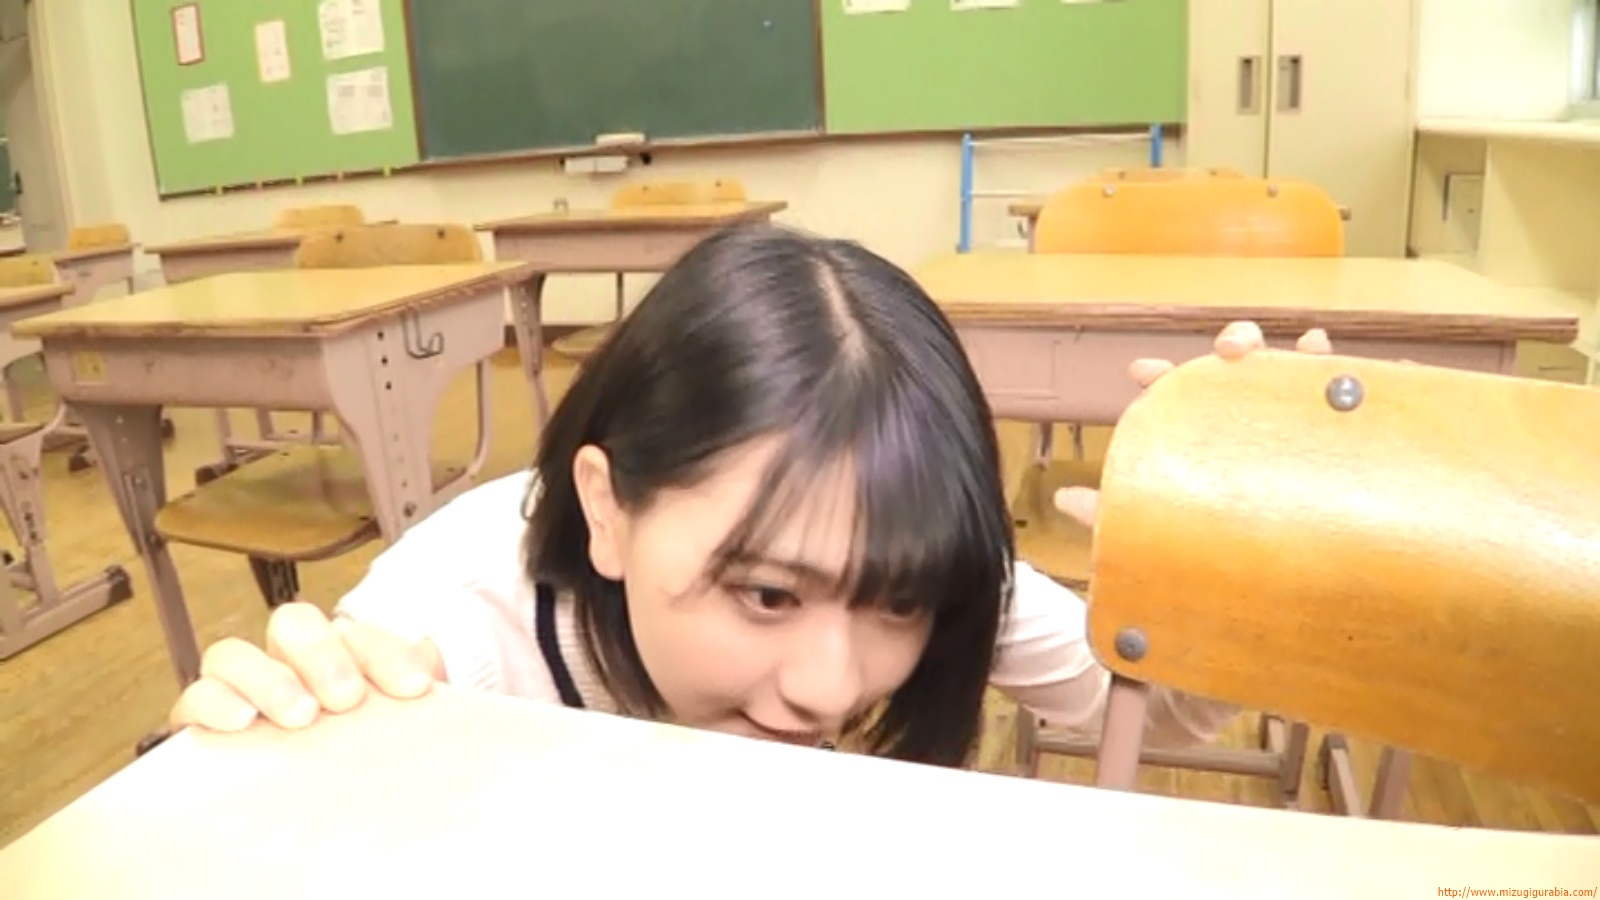 Two-person classroom045